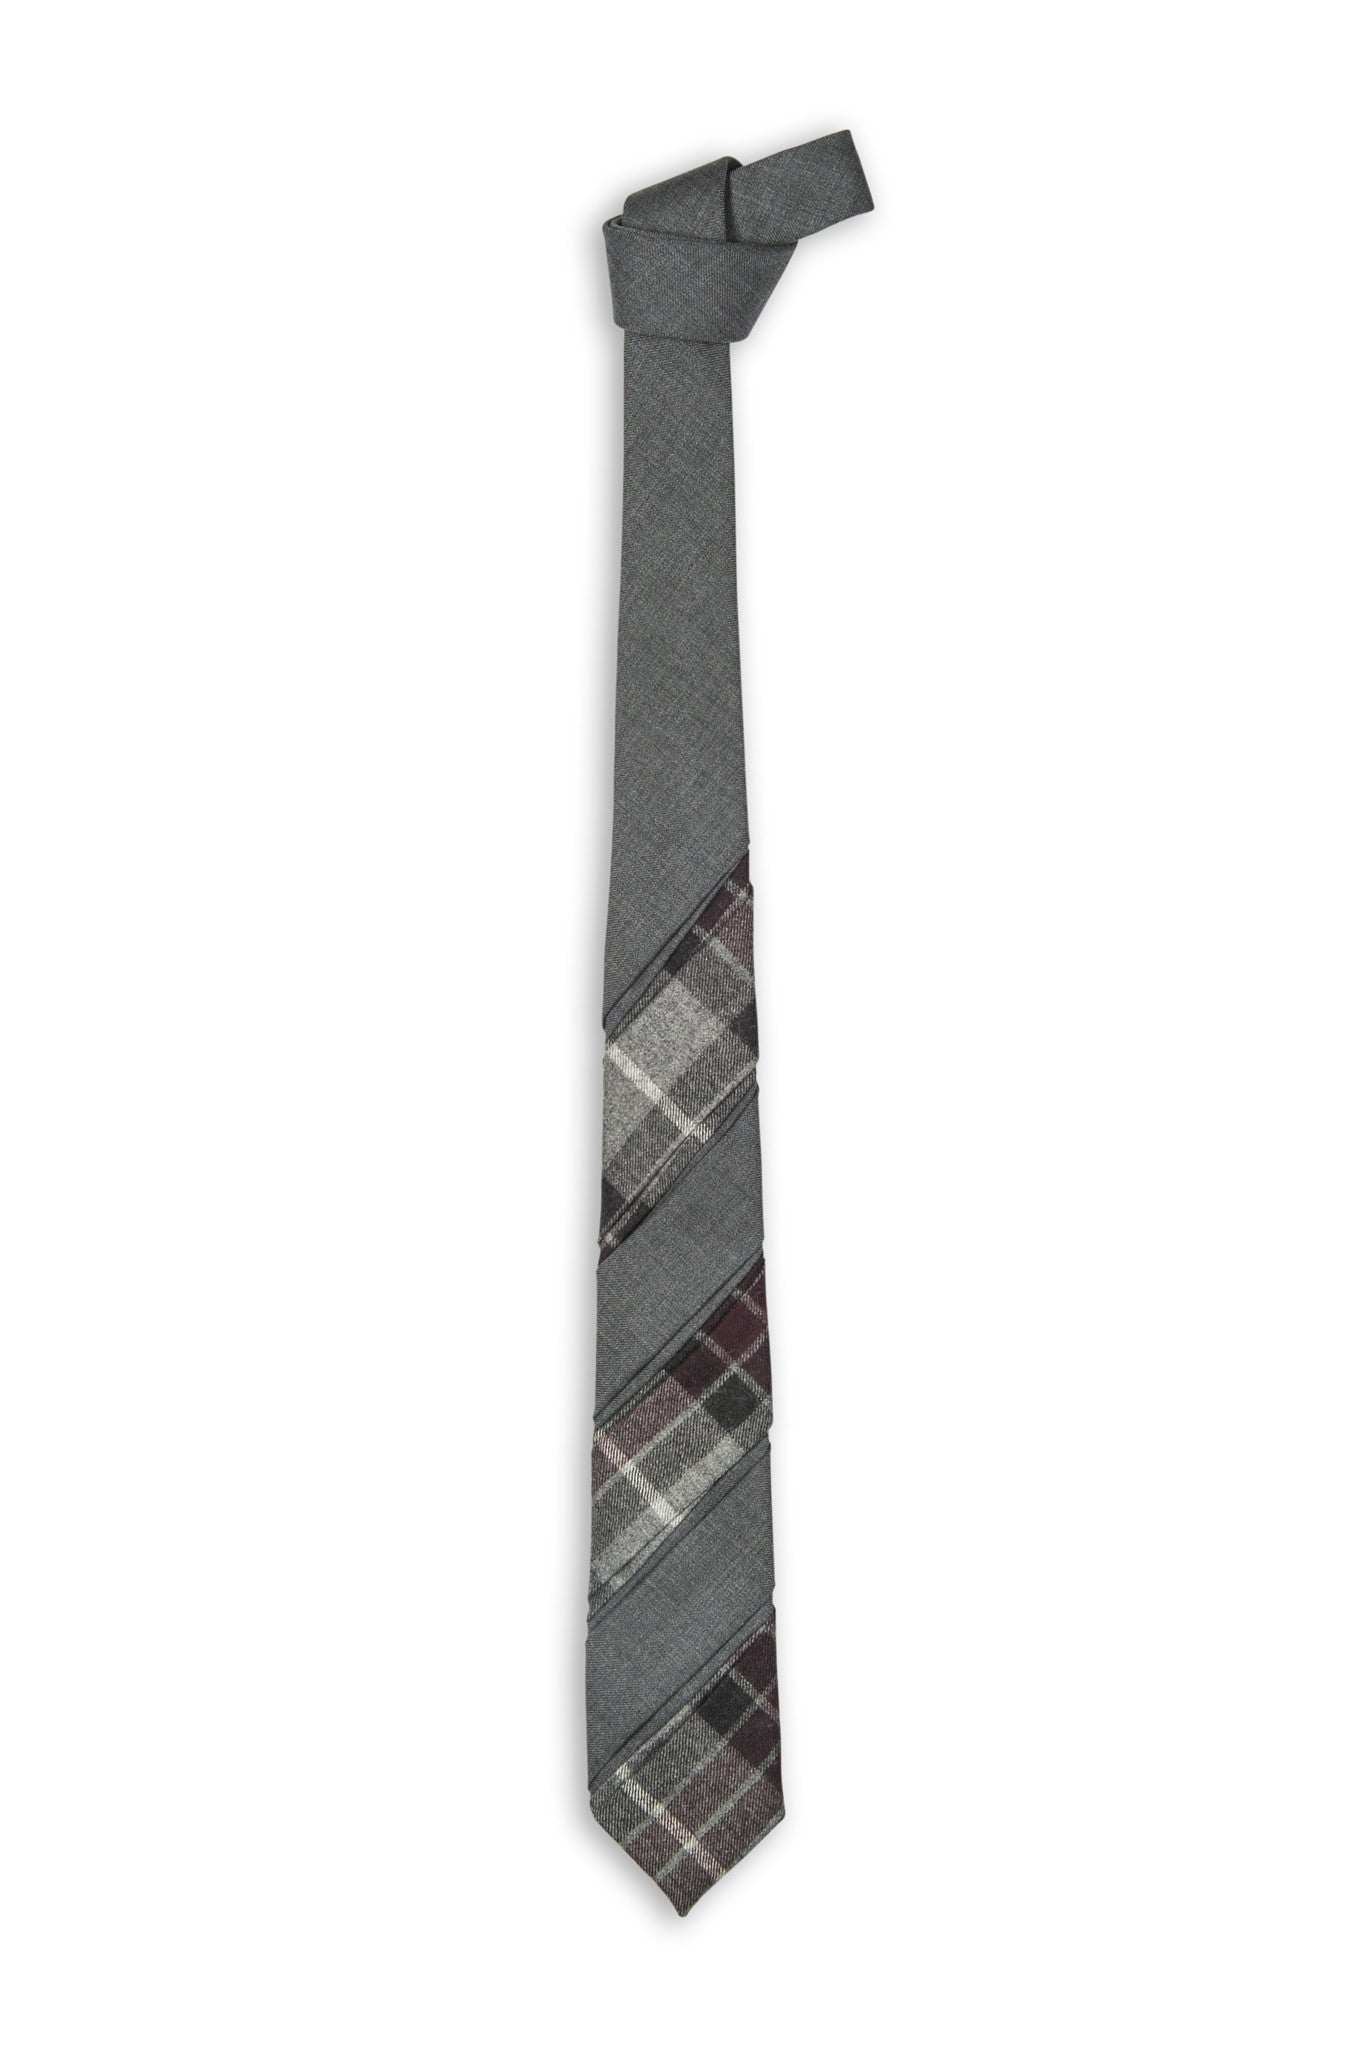 Cravate laine en différente section - Handmade wool tie in different section